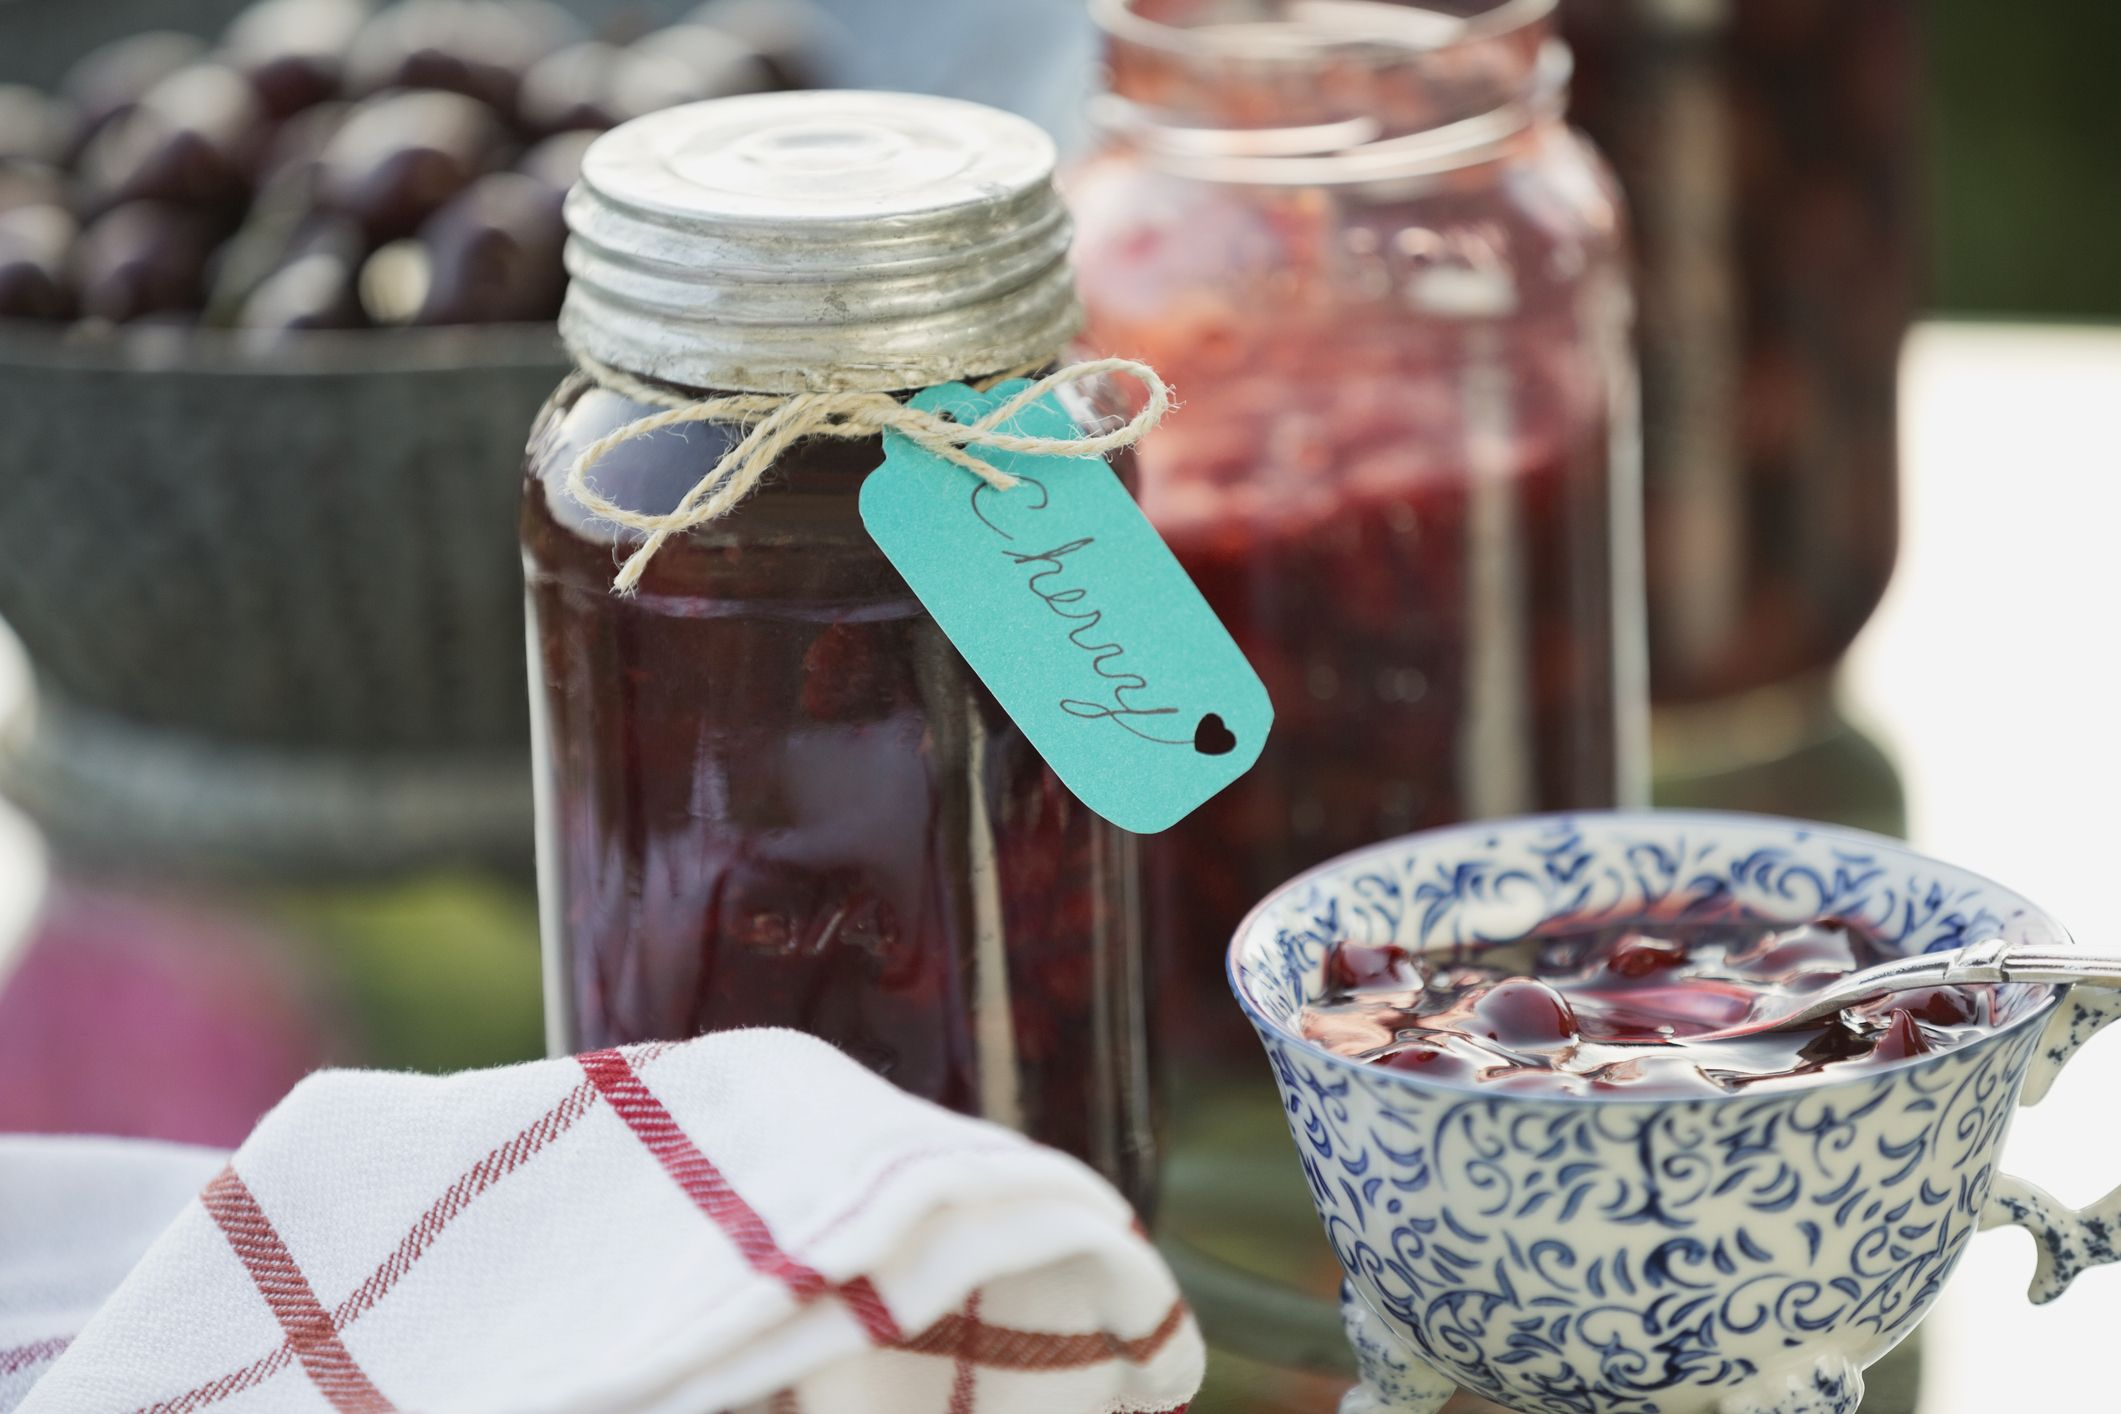 Home Canning Guide - How to Can & Sterilize Mason Jars